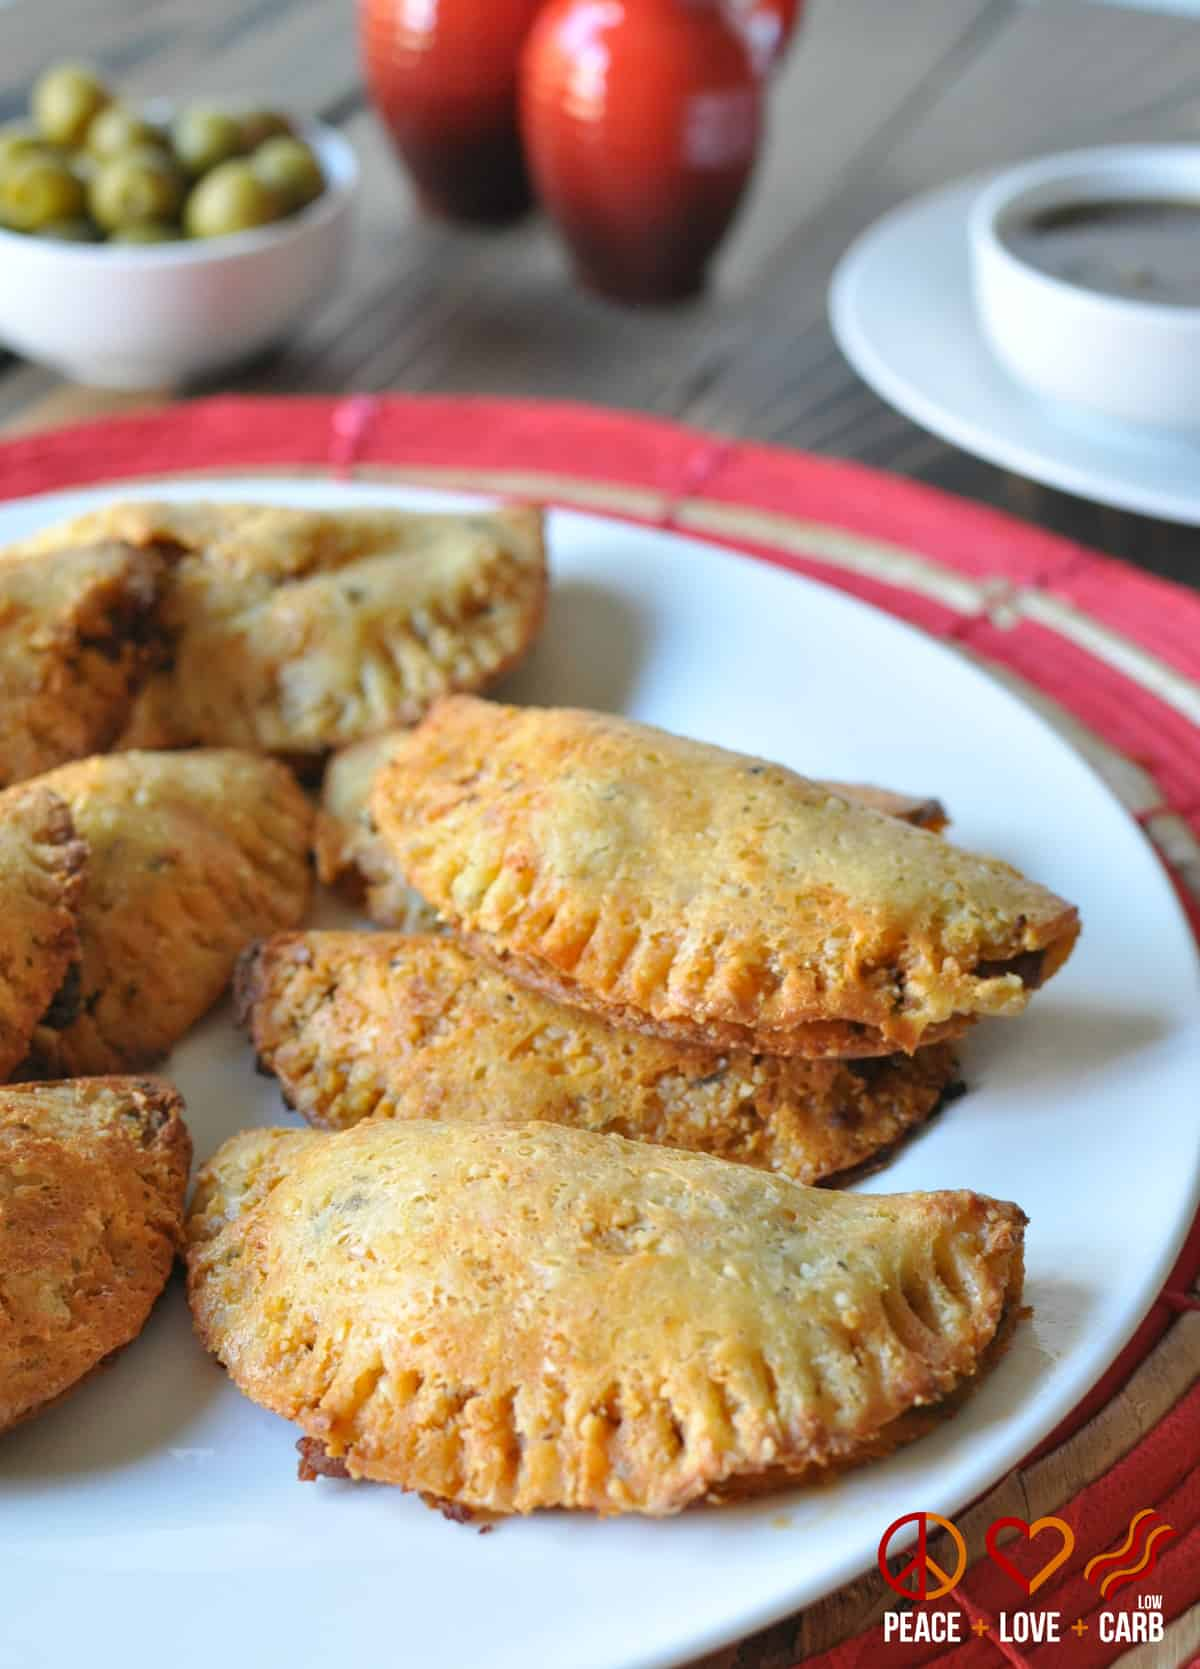 Beef and chorizo empanadas are stacked on a white plate on a gray wooden table with a red table cloth. In the background sits a white bowl of green olives, red salt and pepper shakers, and a white bowl of dipping sauce on a white charger.